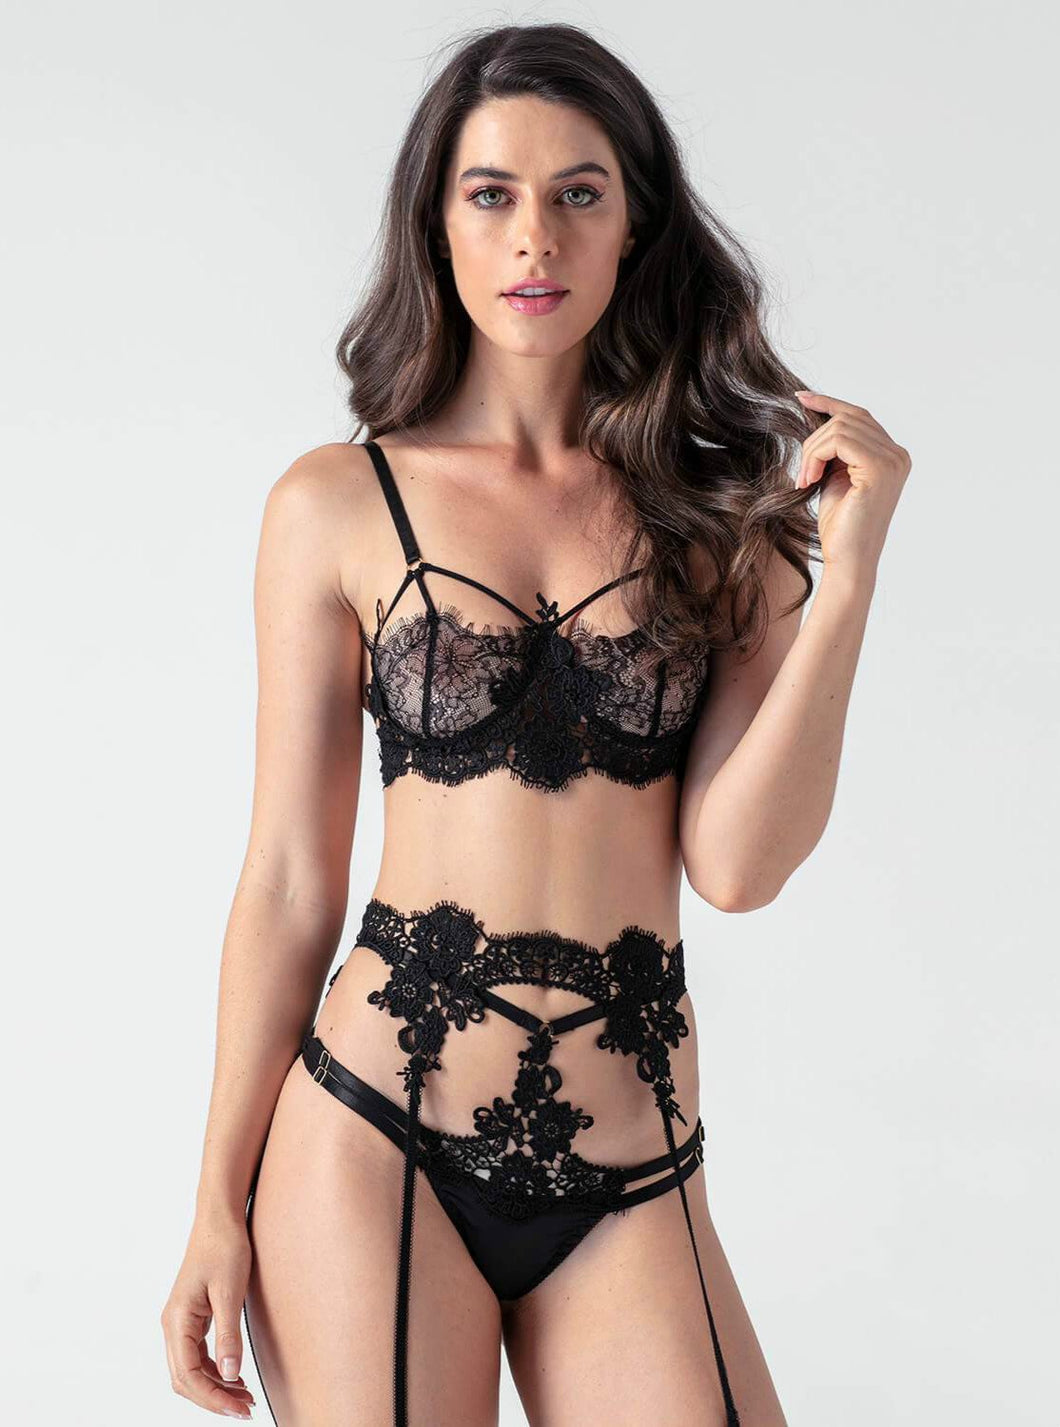 Black Lace Strappy 3 Piece Bra Set - Evalamor